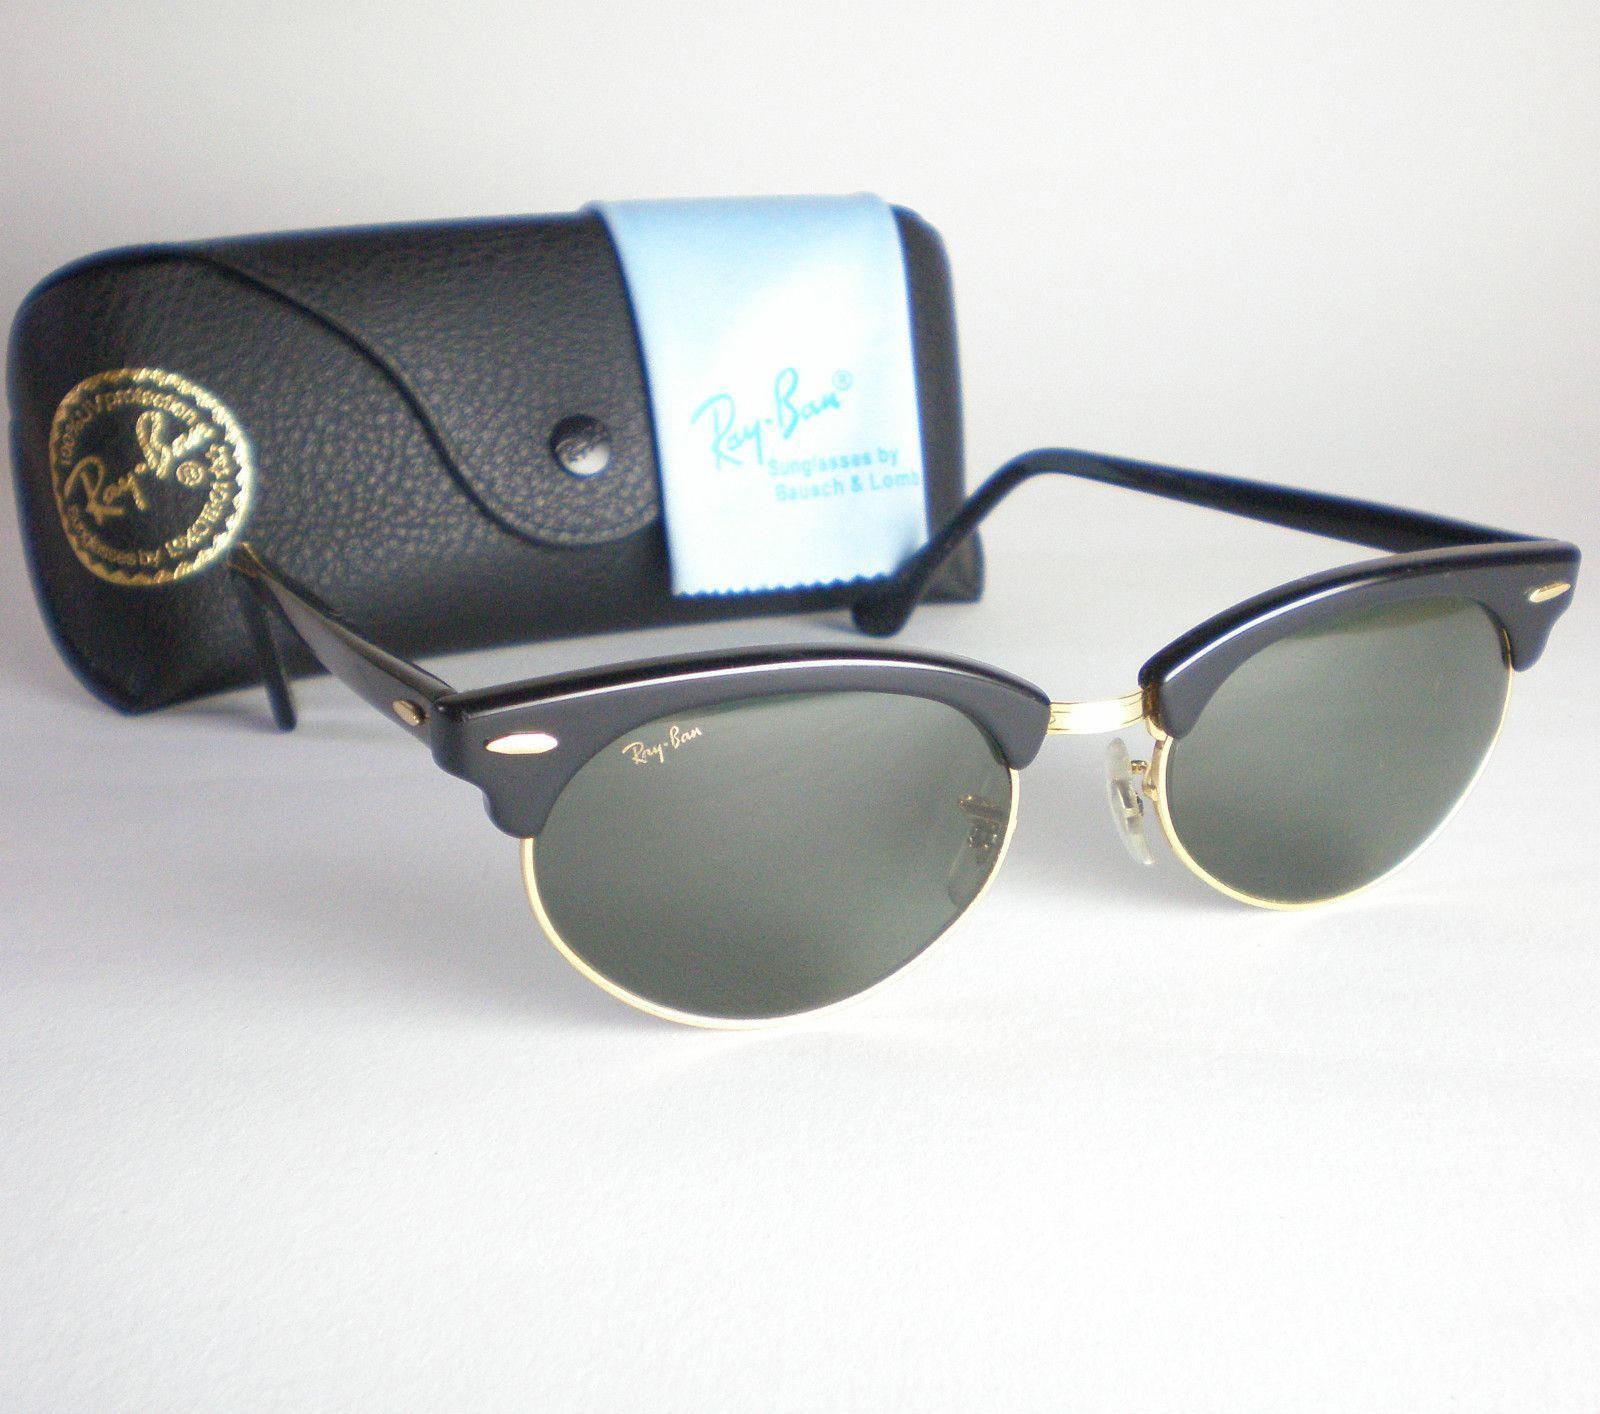 6c17096f32f5 Vintage Ray Ban Women s Sunglasses (Ladies Pre-owned Oval Clubmaster Cat  Eyes Sun Glasses